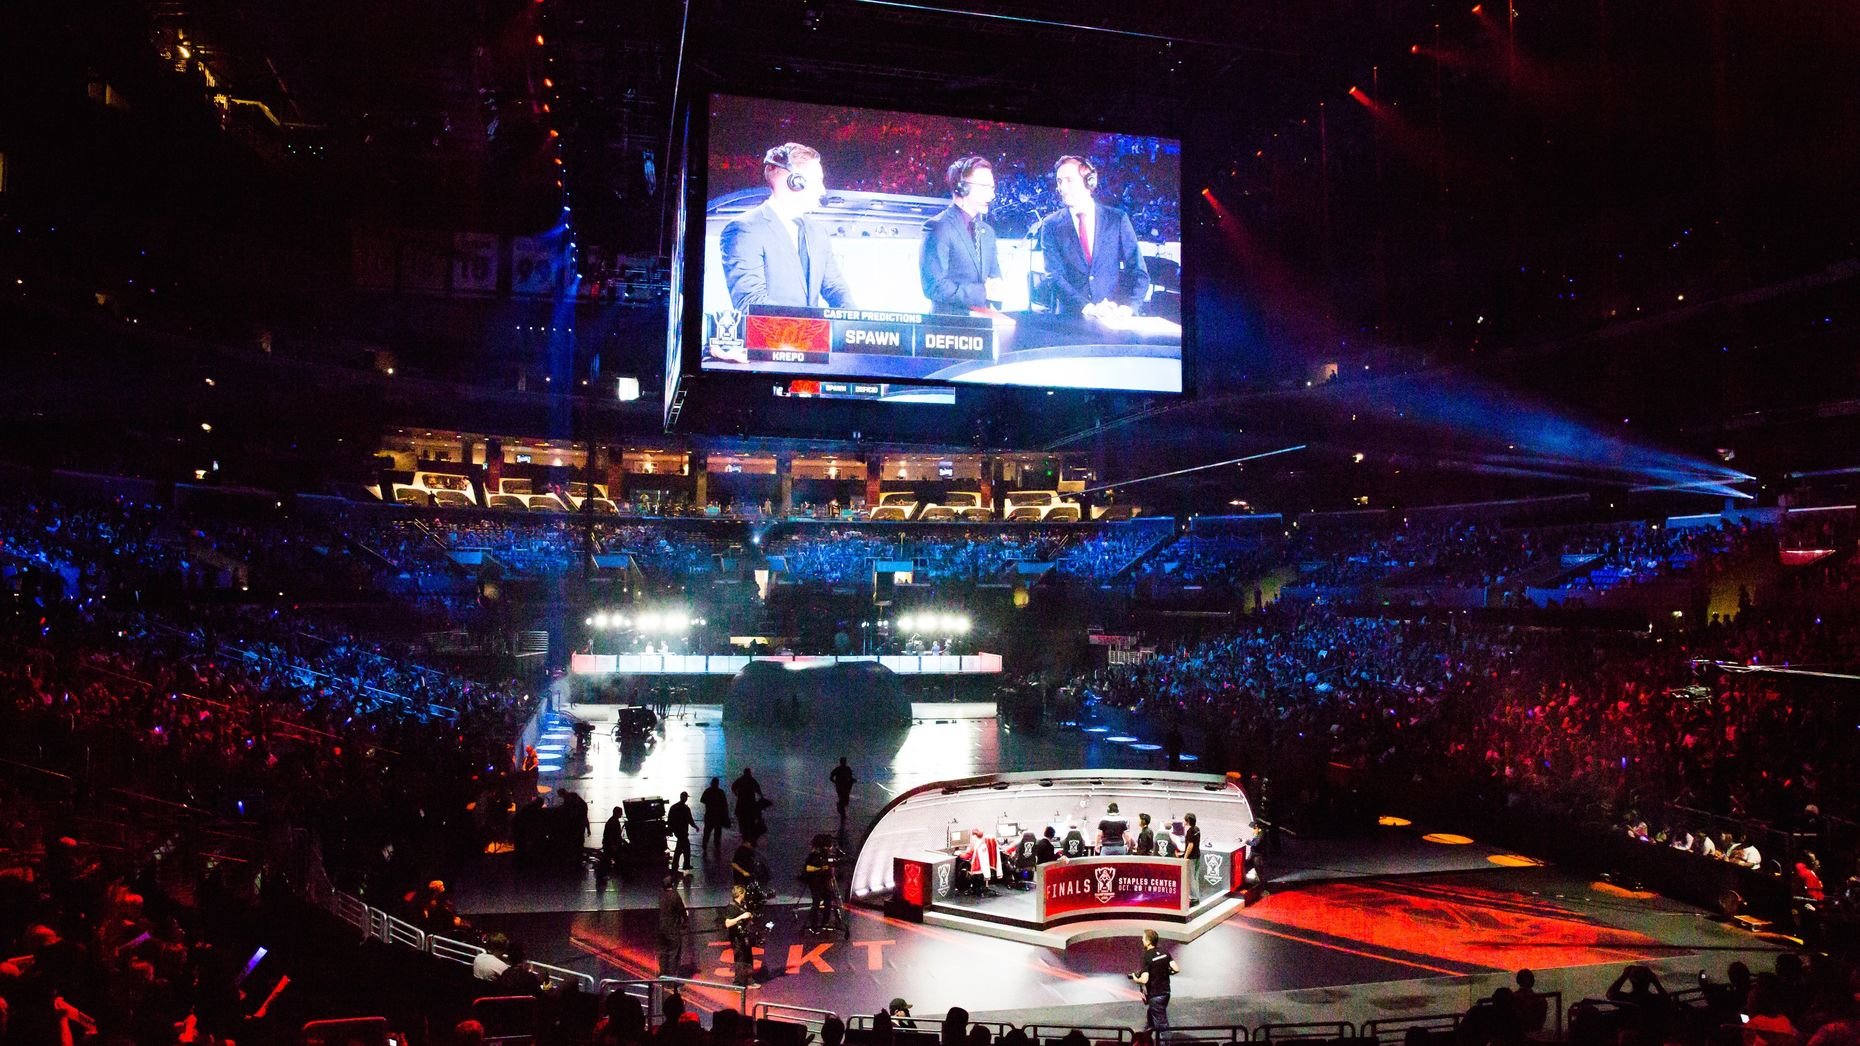 The League of Legends World Championship videogame tournament at the Staples Center in Los Angeles in 2016. Photo: Bloomberg